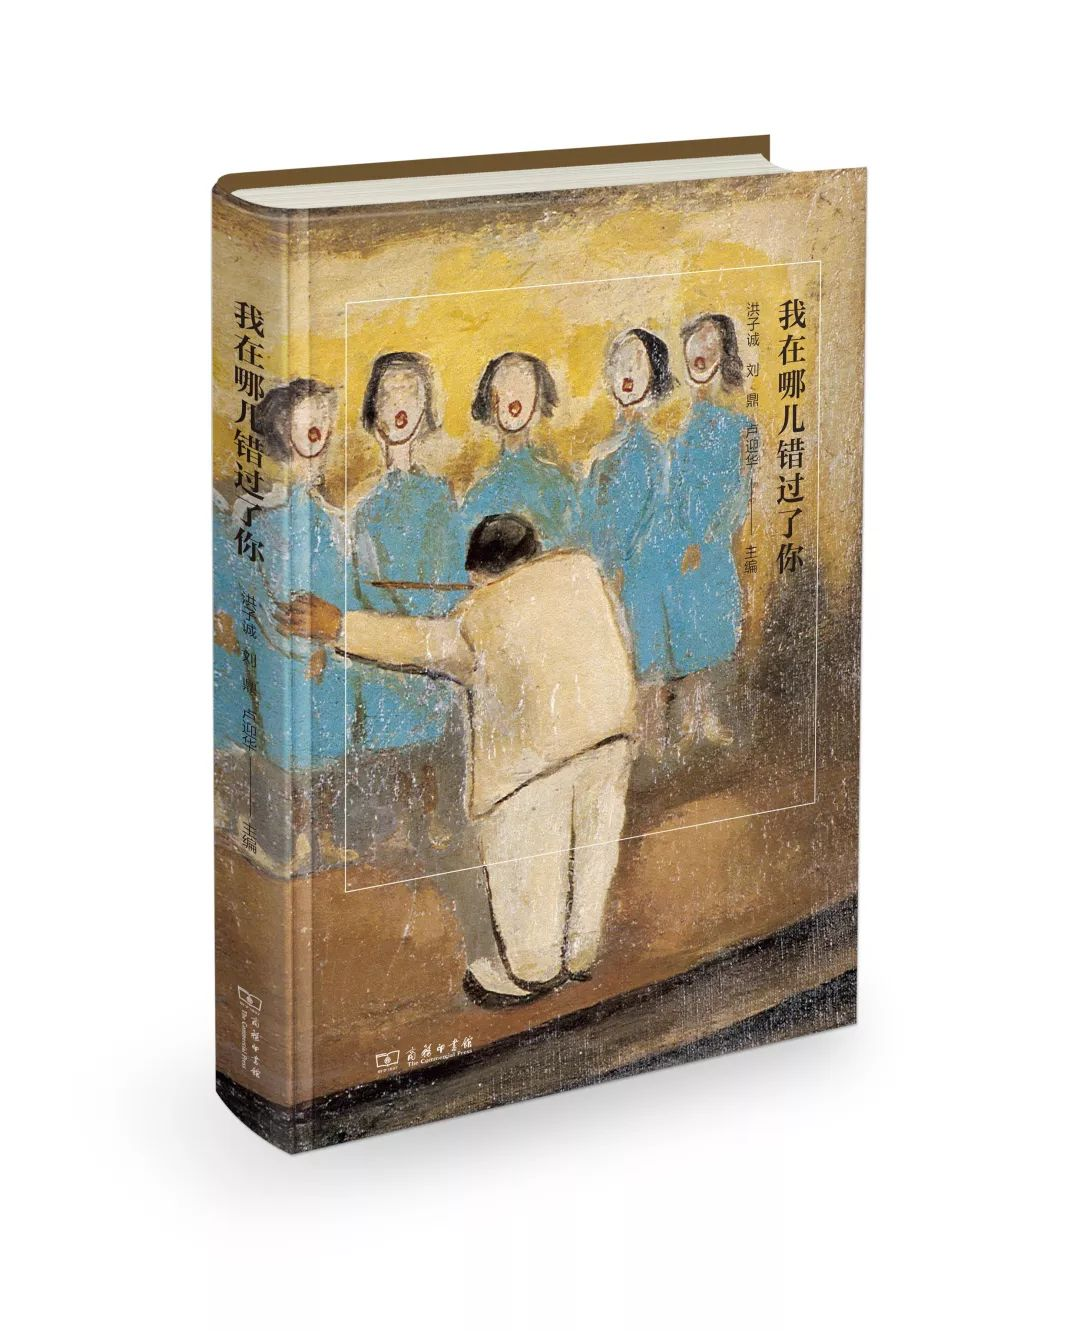 Where Have I Missed You     Edited by Hong Zicheng, Liu Ding, Carol Yinghua Lu   Conceived and edited by Hong Zicheng, Professor of Chinese Literature at Peking University, Liu Ding, artist, curator and Carol Yinghua Lu, director of Beijing Inside-Out Art Museum, this book is a rich collection of essays by 29 distinguished writers, poets, film and theatre directors, scholars and artists, including the likes of Qian Liqun, Zhai Yongming, Xi Chuan, Sun Yu, Ge Fei, Lou Ye, Wang Huangsheng, Ding Yi, Qiu Ting, Xu Jian. They were invited to elaborate on specific texts that had made a significant impact on their ways of thinking and practice, yet they had missed before or nearly missed. Contributors to this publication shared their passions, insights, perspectives, and values rooted in their individual experiences and fields of practice and formed new alliances of opinions and interests.